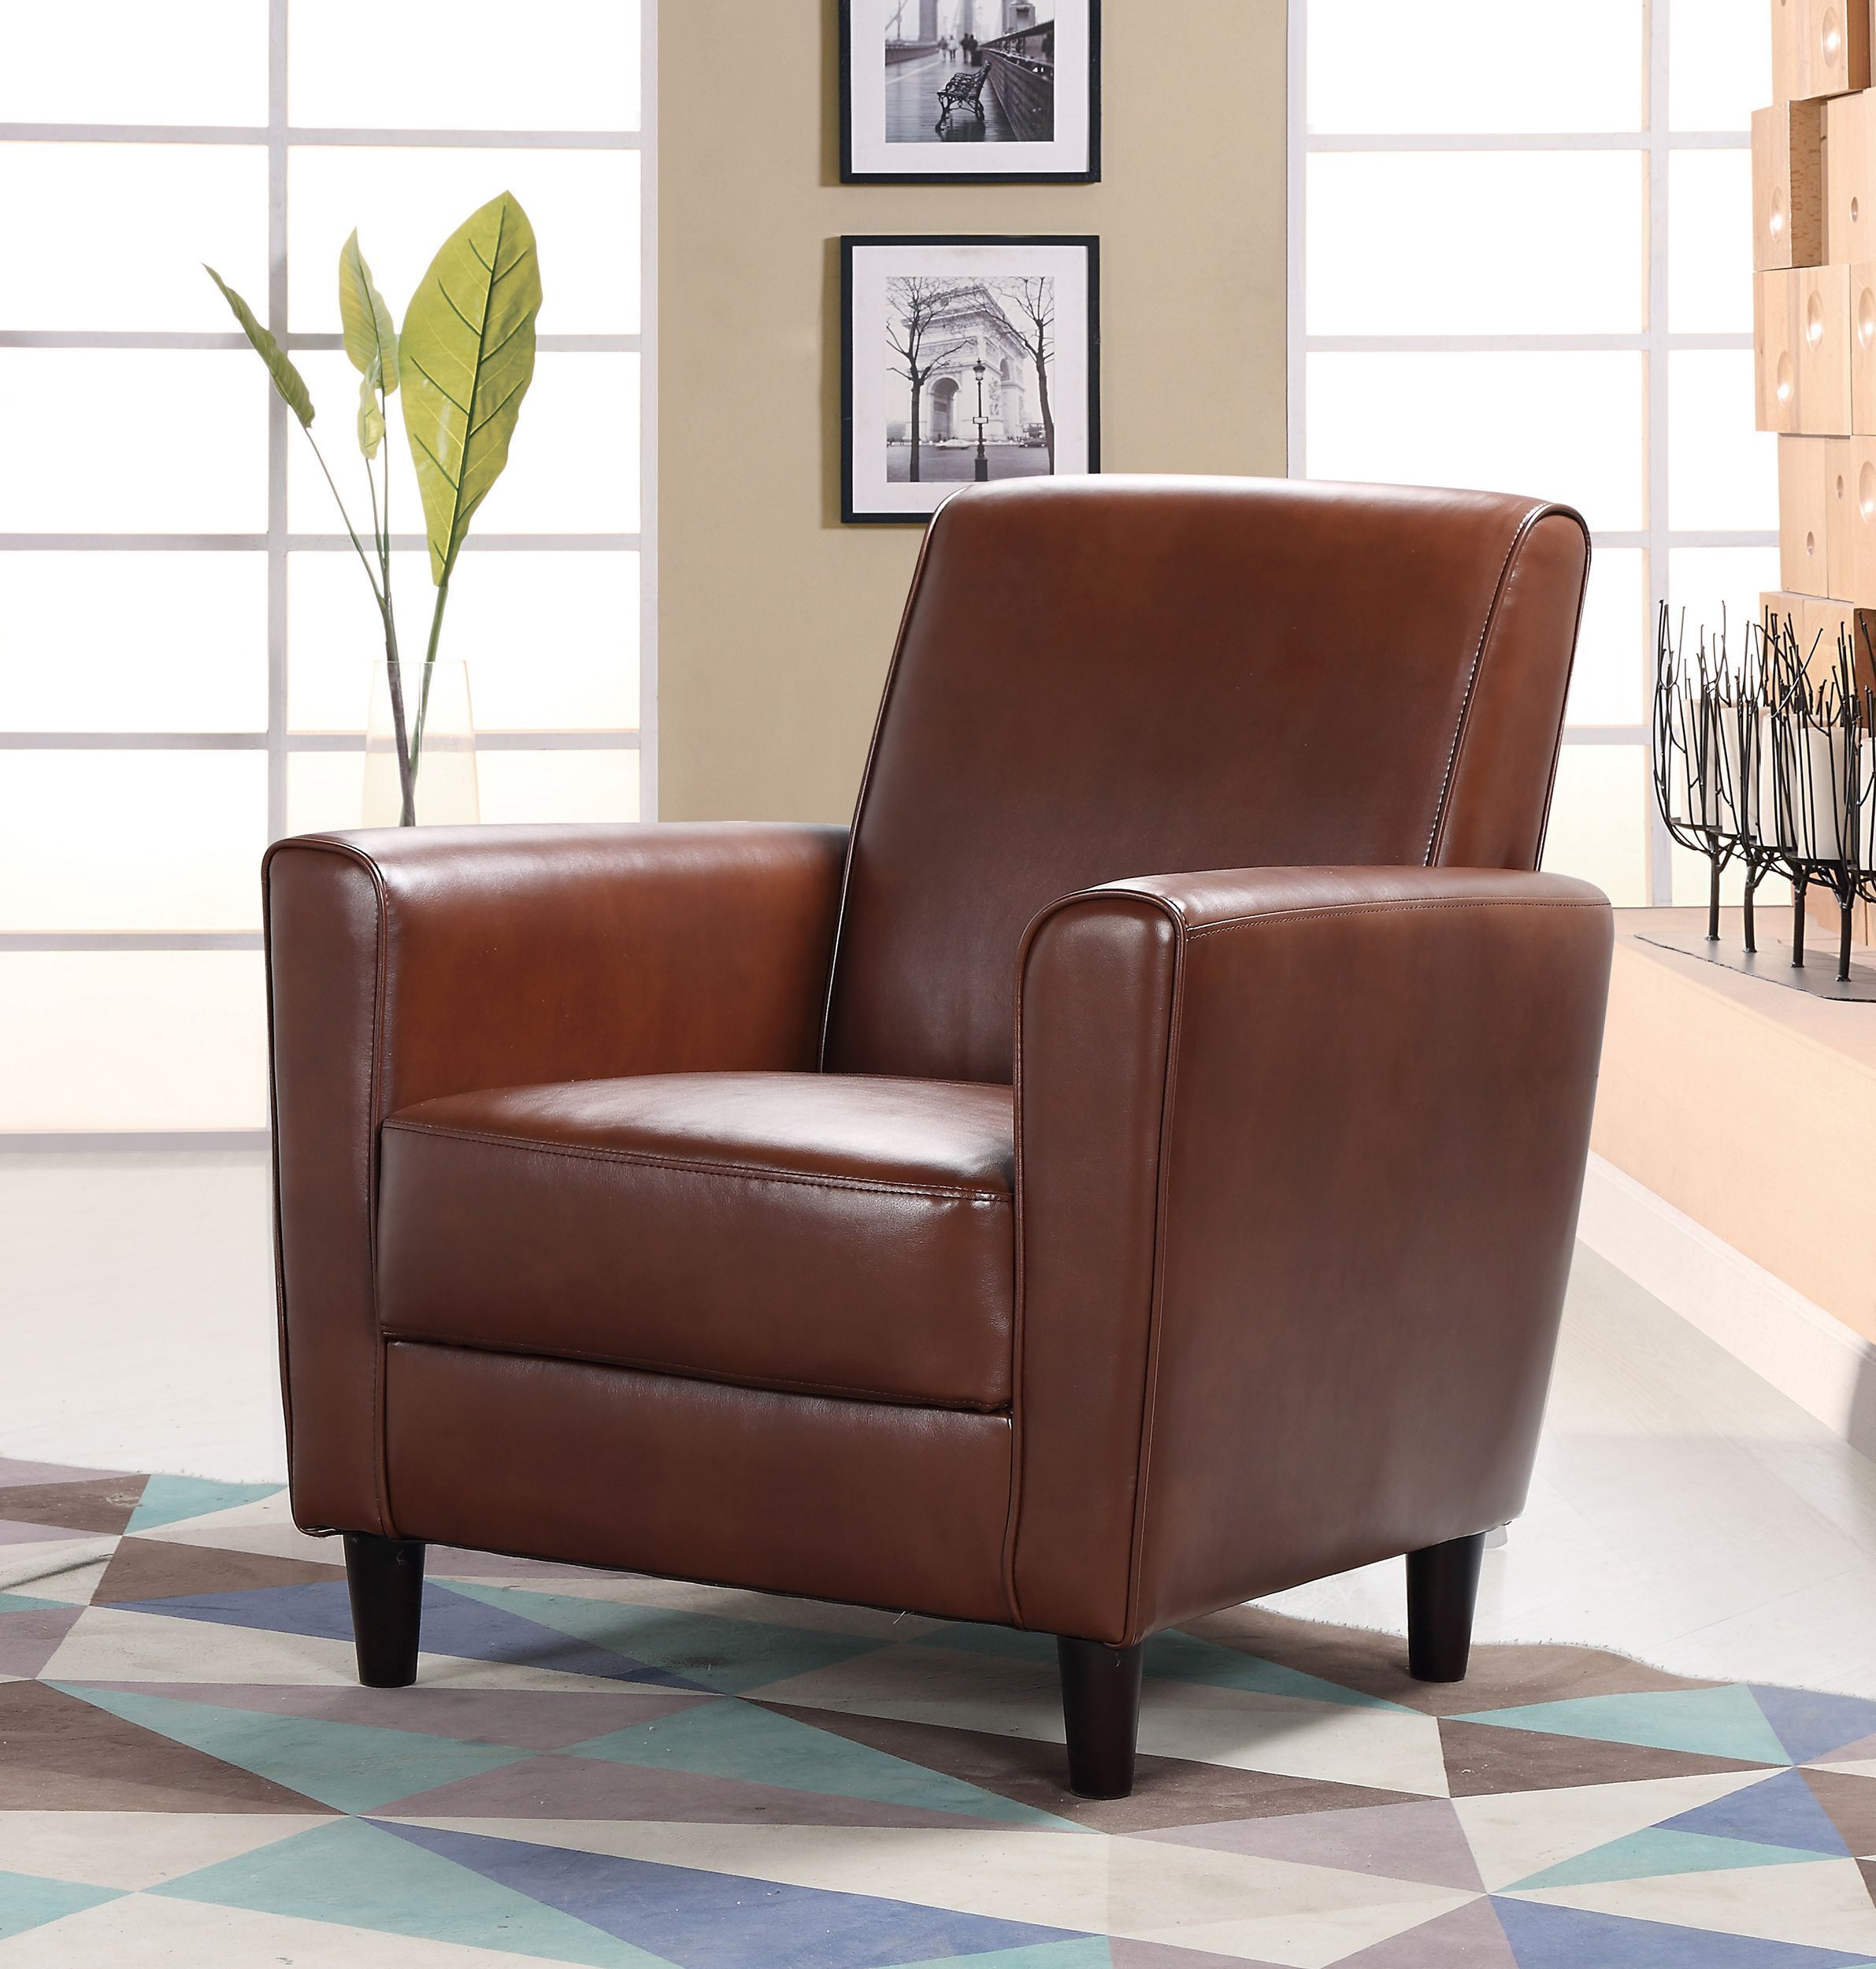 Remarkable Create A Classic Focal Point In Your Living Room Or Bedroom Caraccident5 Cool Chair Designs And Ideas Caraccident5Info